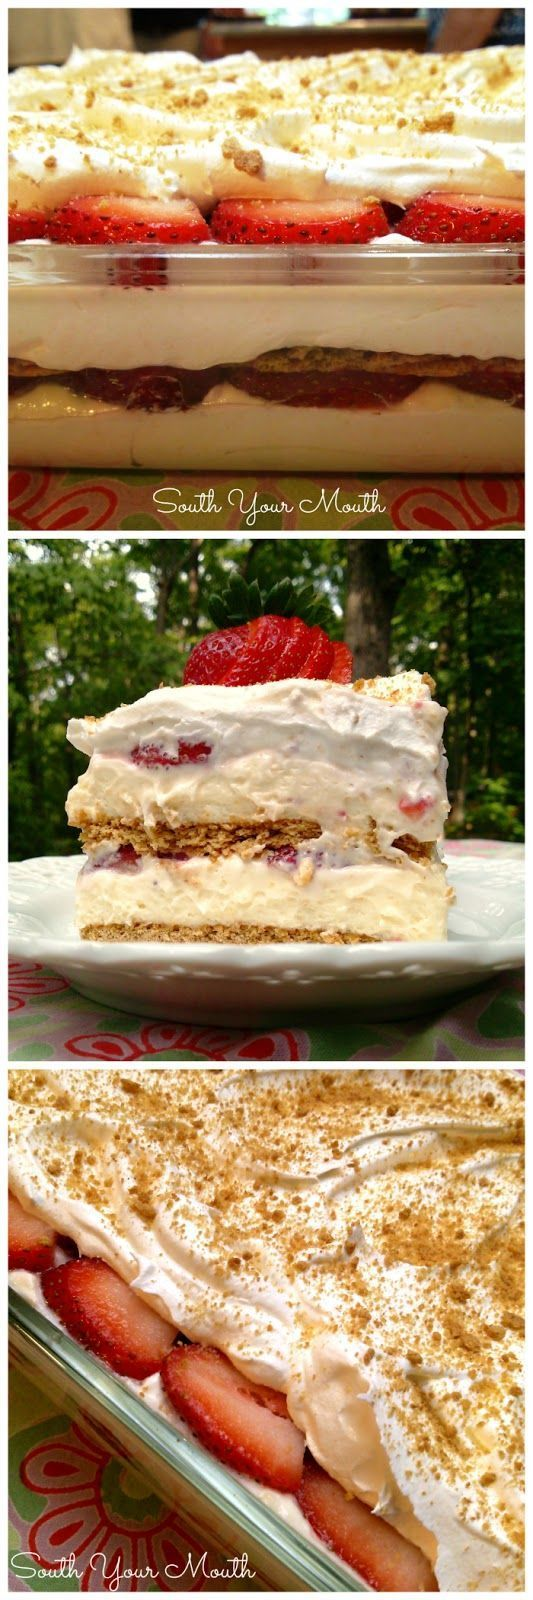 South Your Mouth: Strawberry Cream Cheese Icebox Cake